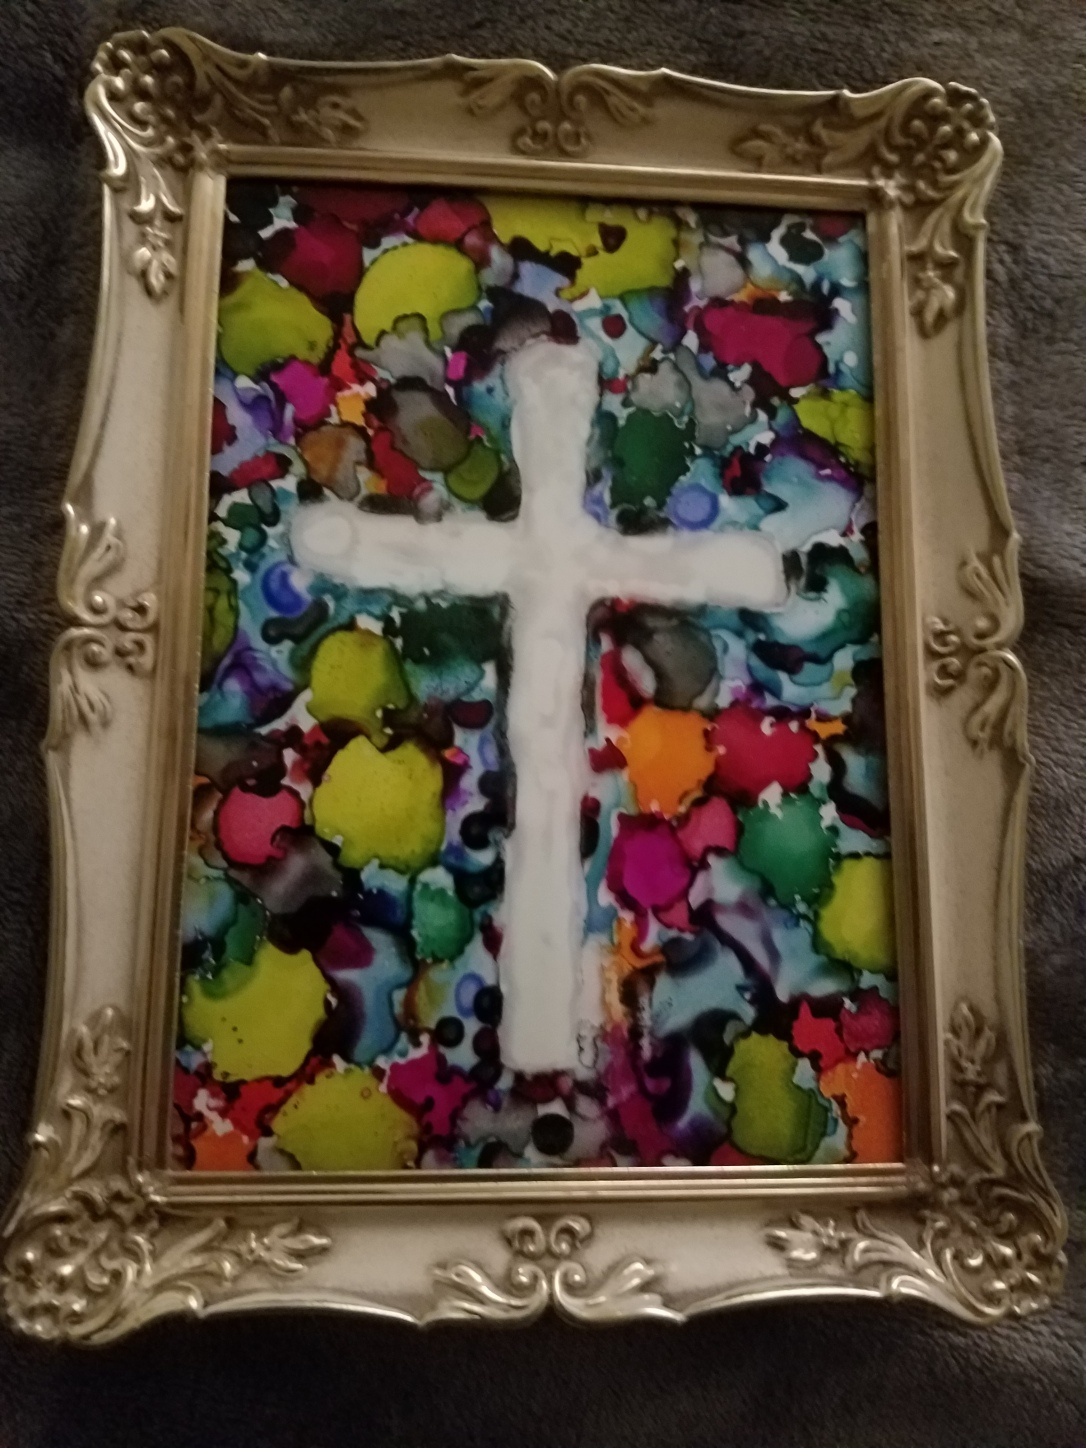 Even with Colors about the light of the Cross is foremost